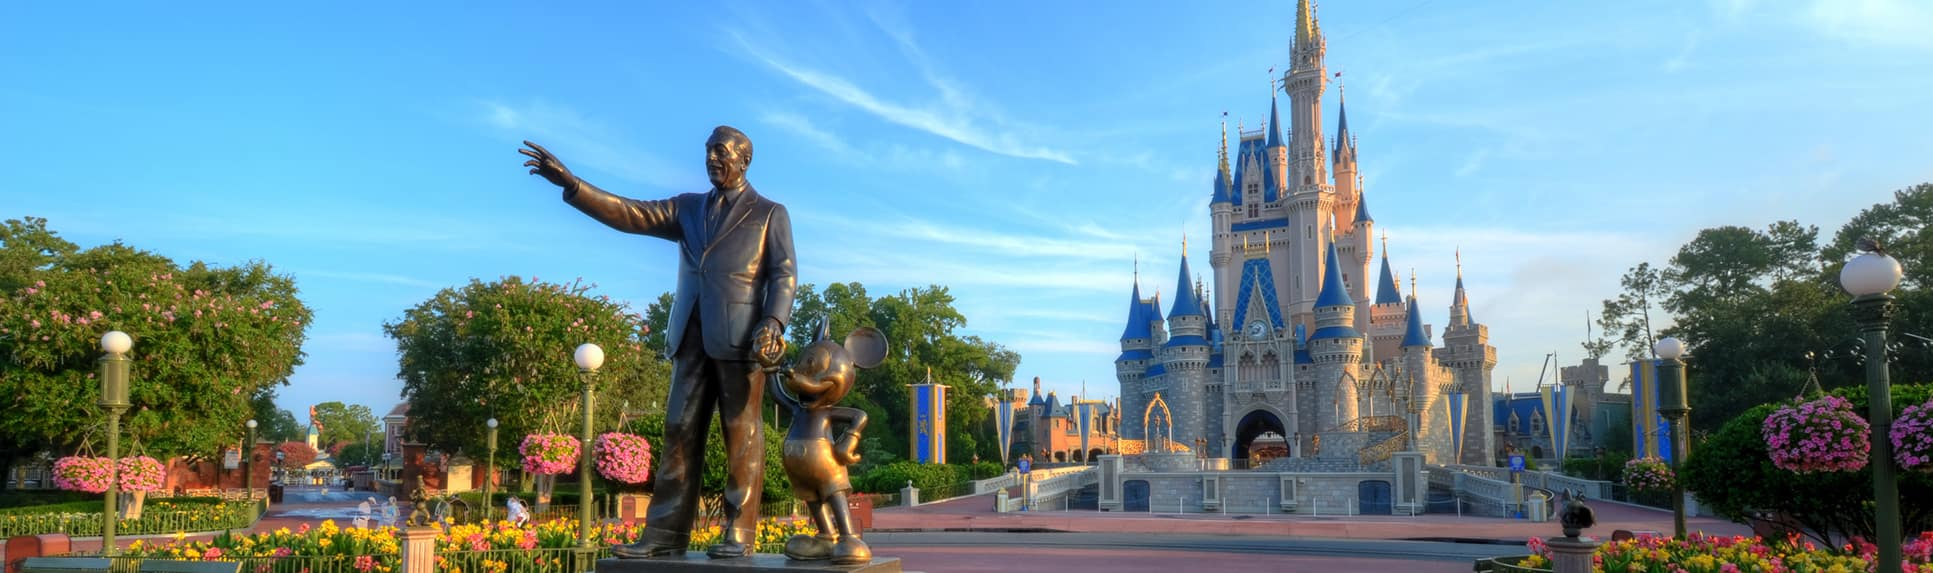 A statue of Mickey Mouse and Walt Disney holding hands in front of Cinderella Castle at Magic Kingdom park